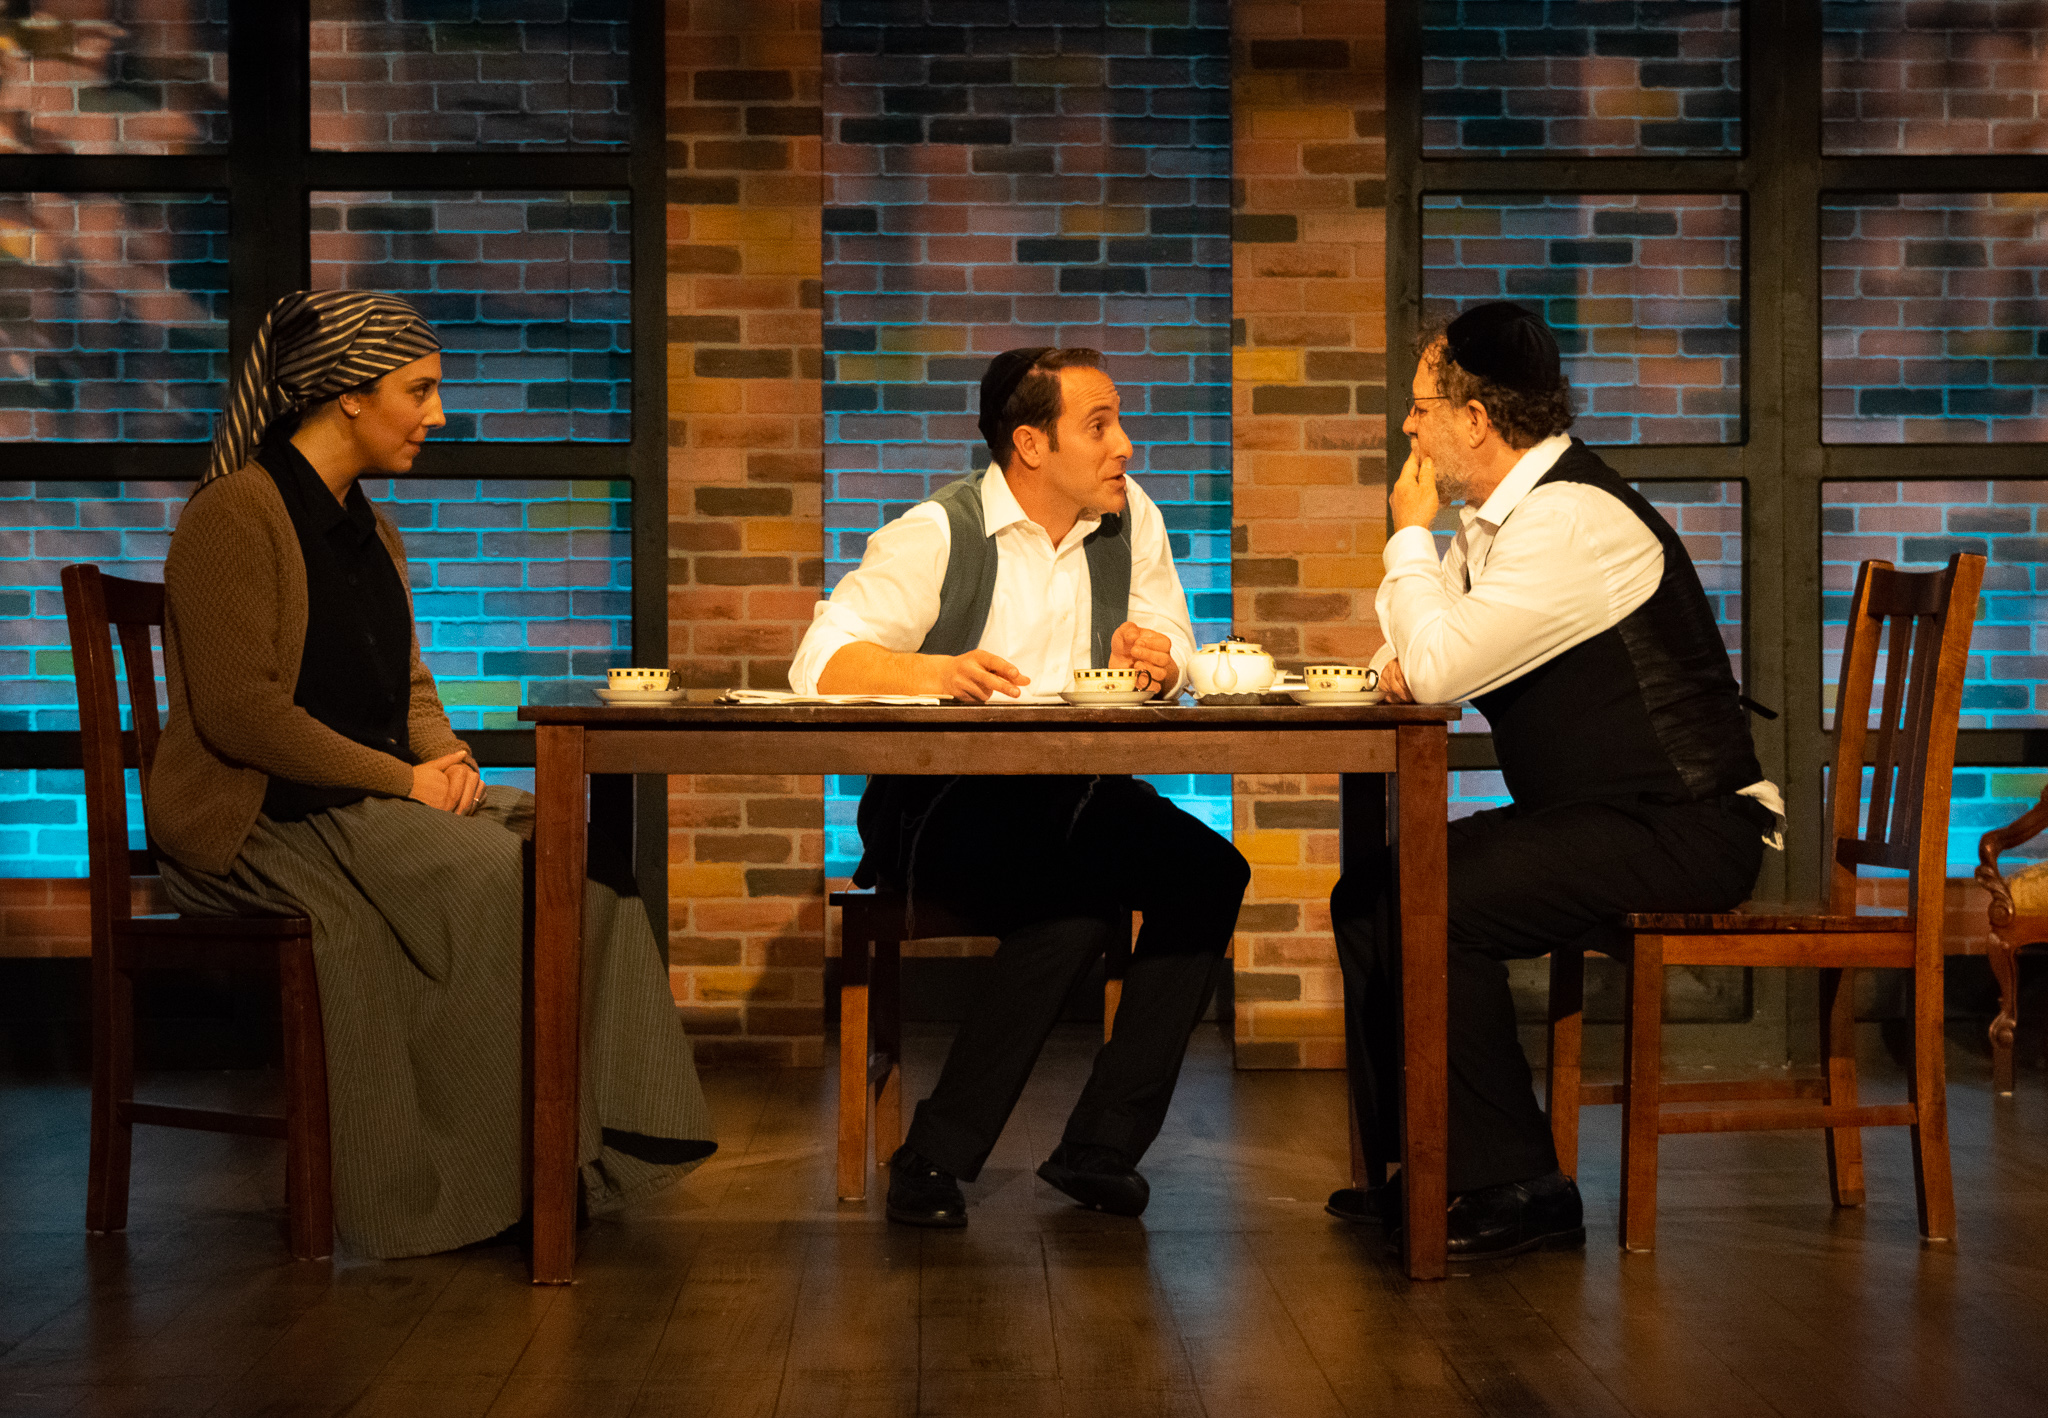 Rivkeh Lev (Stefanie Londino), Asher Lev (Jordan Sobel), Aryeh Lev (Dan Shor) in the Playhouse on Park production of My Name is Asher Lev, directed by Jospeh Discher (photos by Meredith Longo)